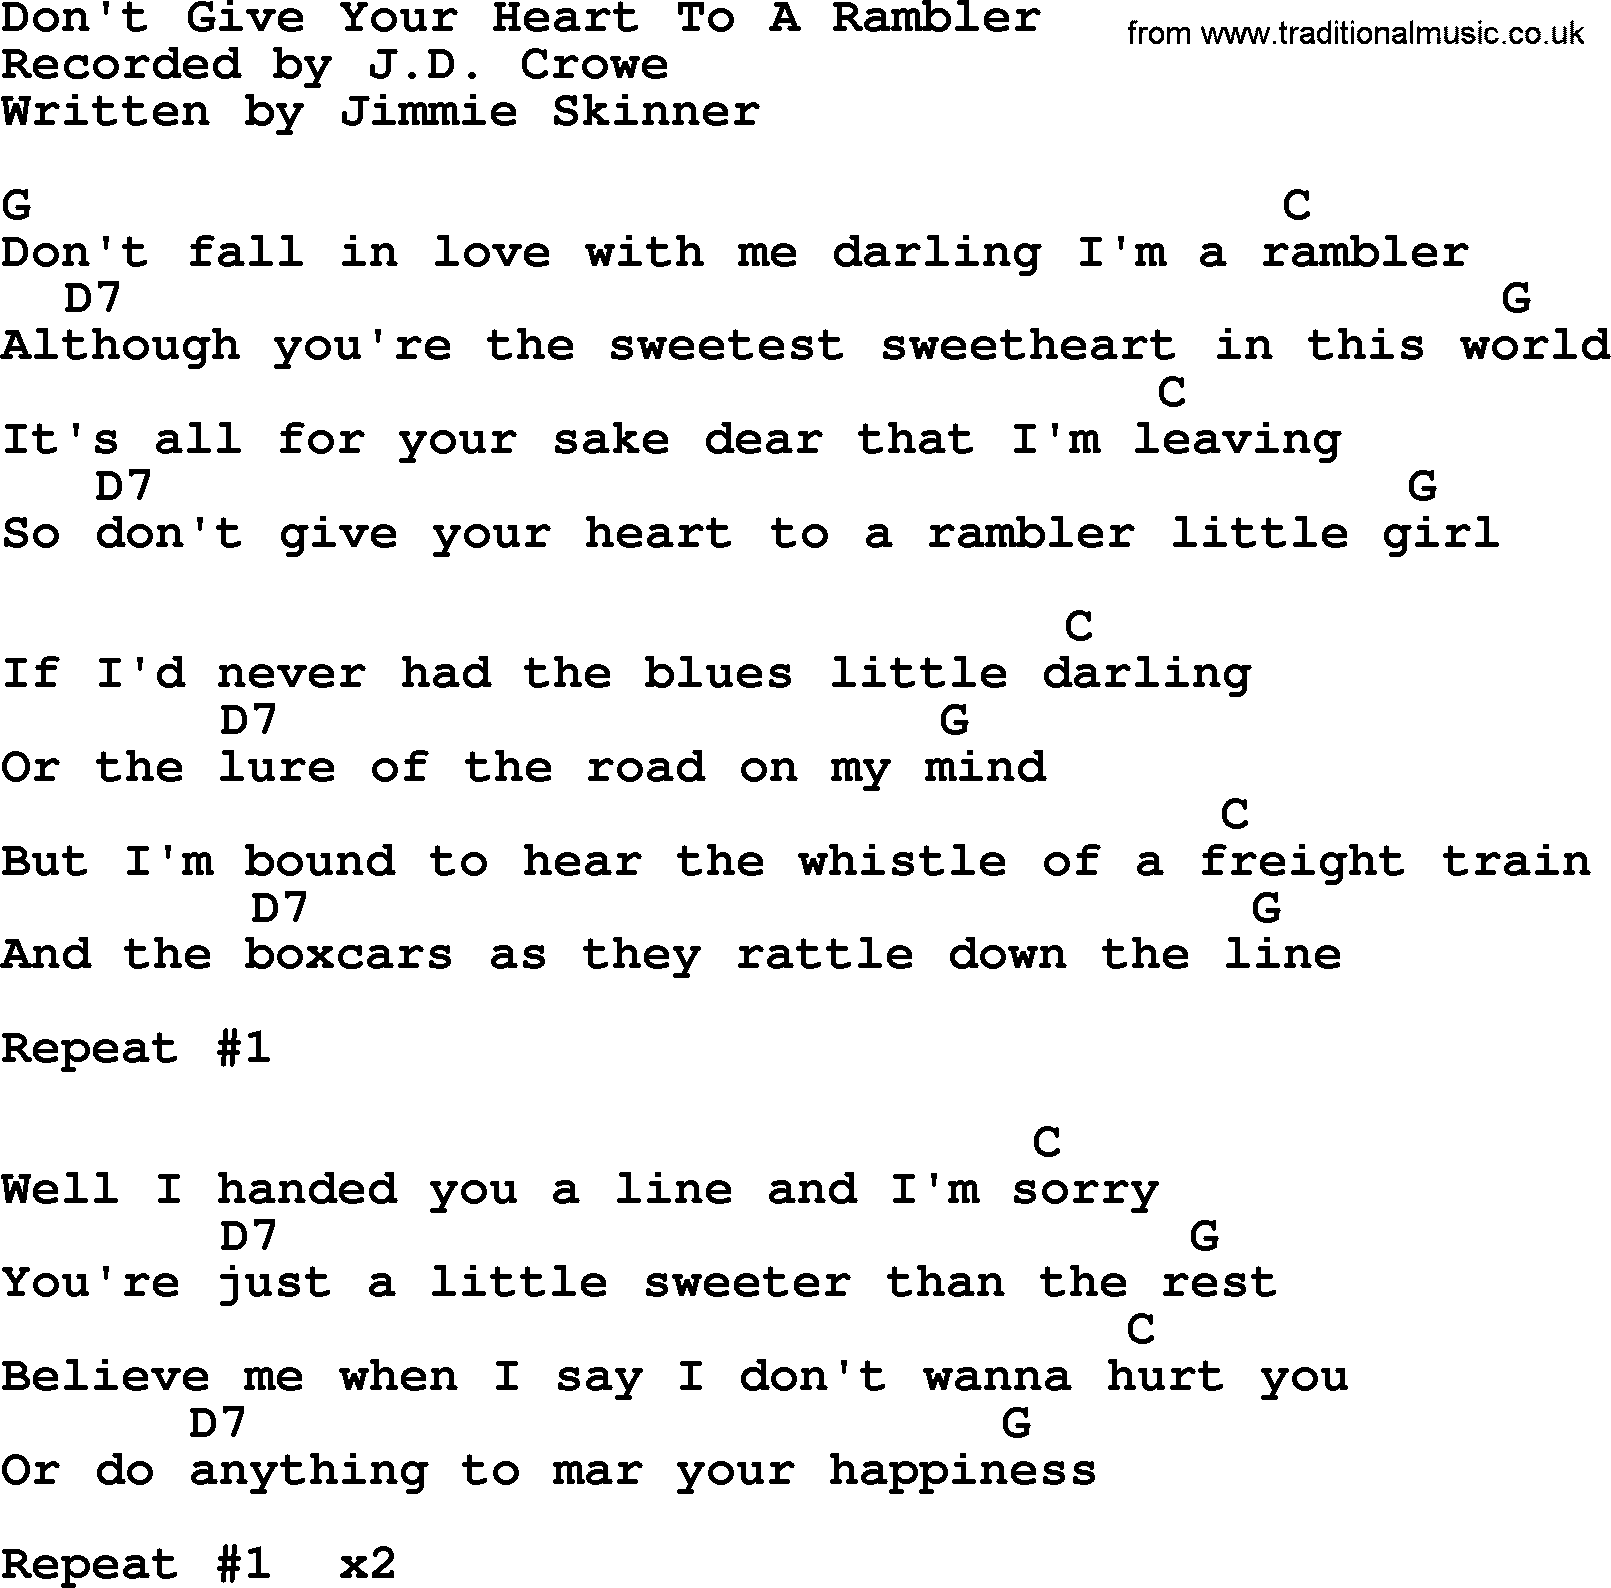 Dont give your heart to a rambler bluegrass lyrics with chords bluegrass song dont give your heart to a rambler lyrics and chords hexwebz Choice Image